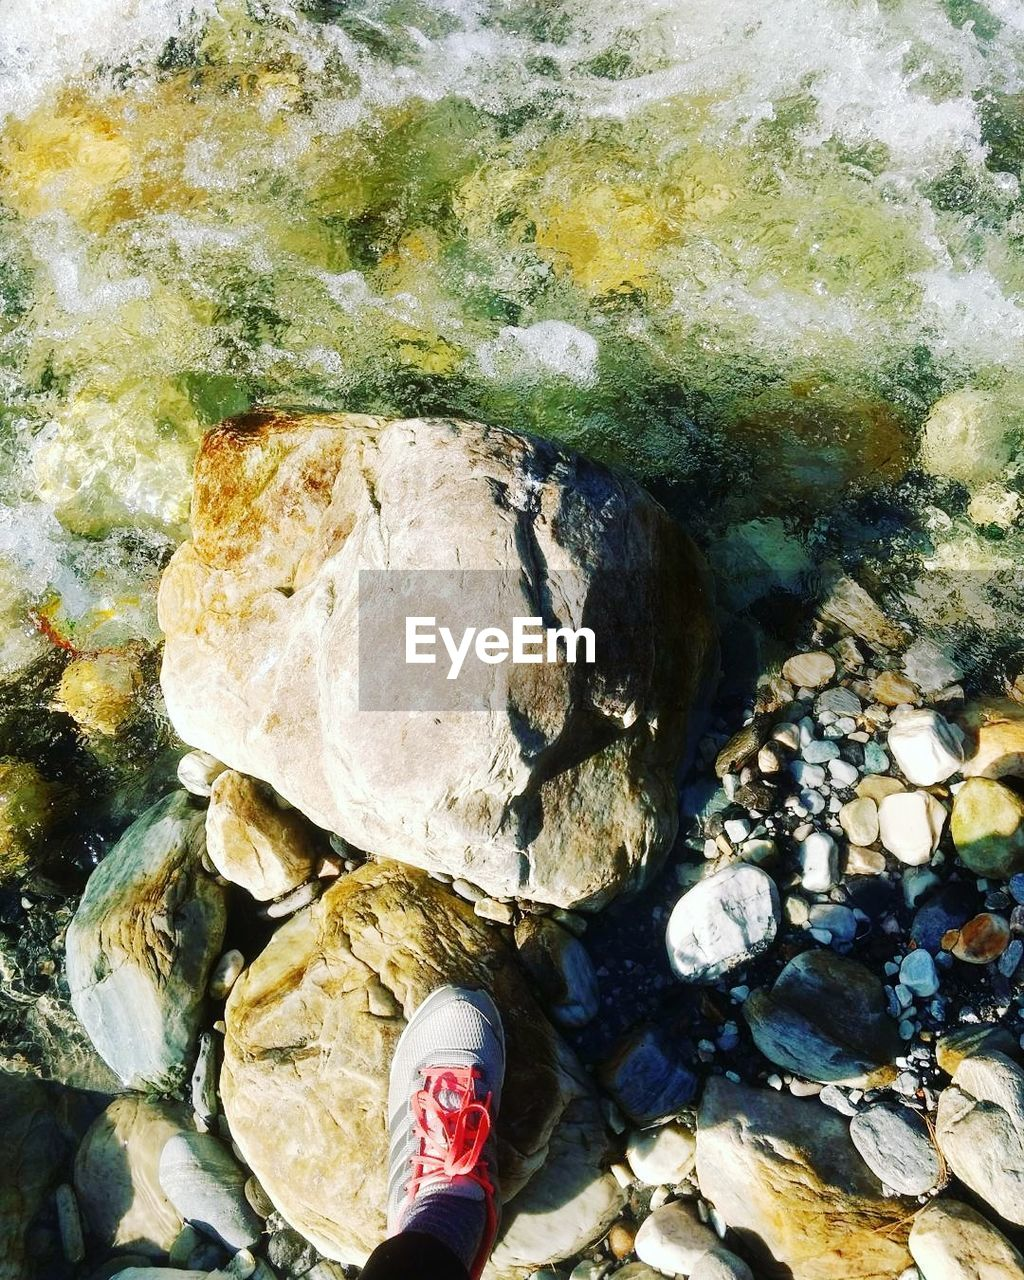 rock - object, personal perspective, pebble, human leg, one person, shallow, low section, water, standing, nature, real people, human body part, day, outdoors, beach, beauty in nature, close-up, pebble beach, people